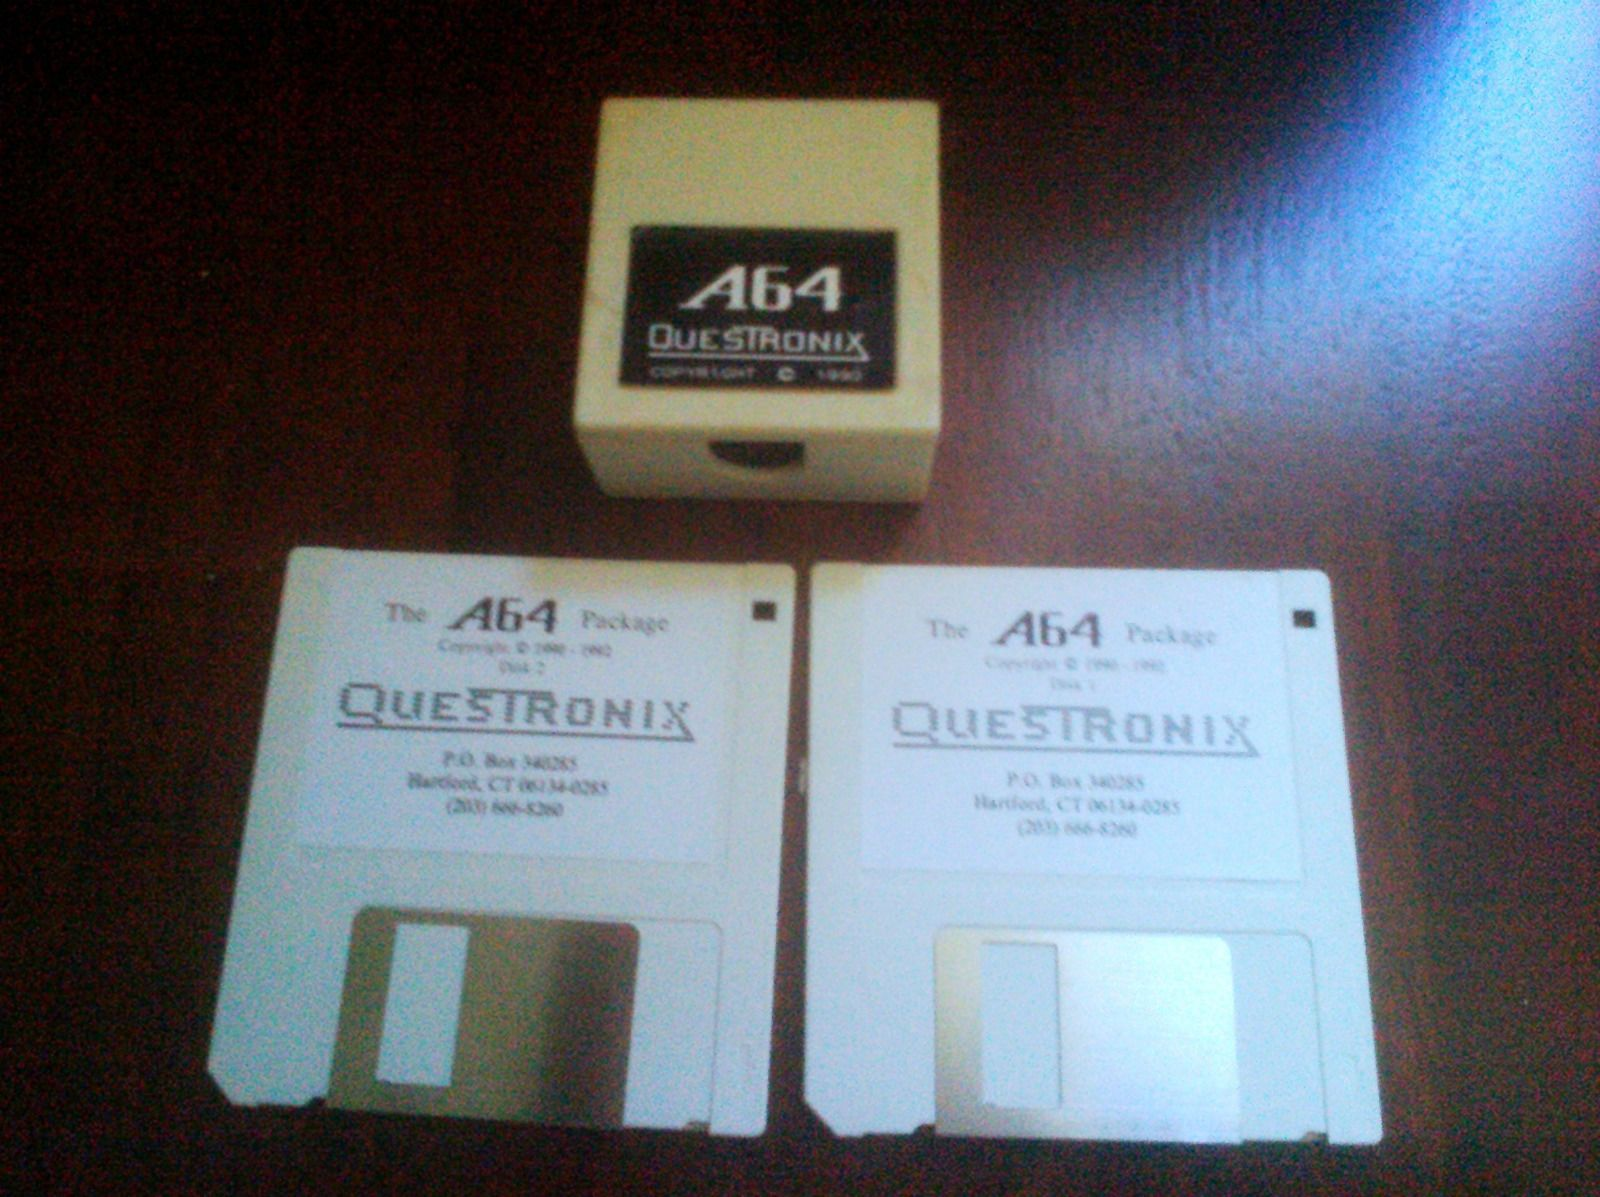 A64, Commodore 64 emulator hardware and software for